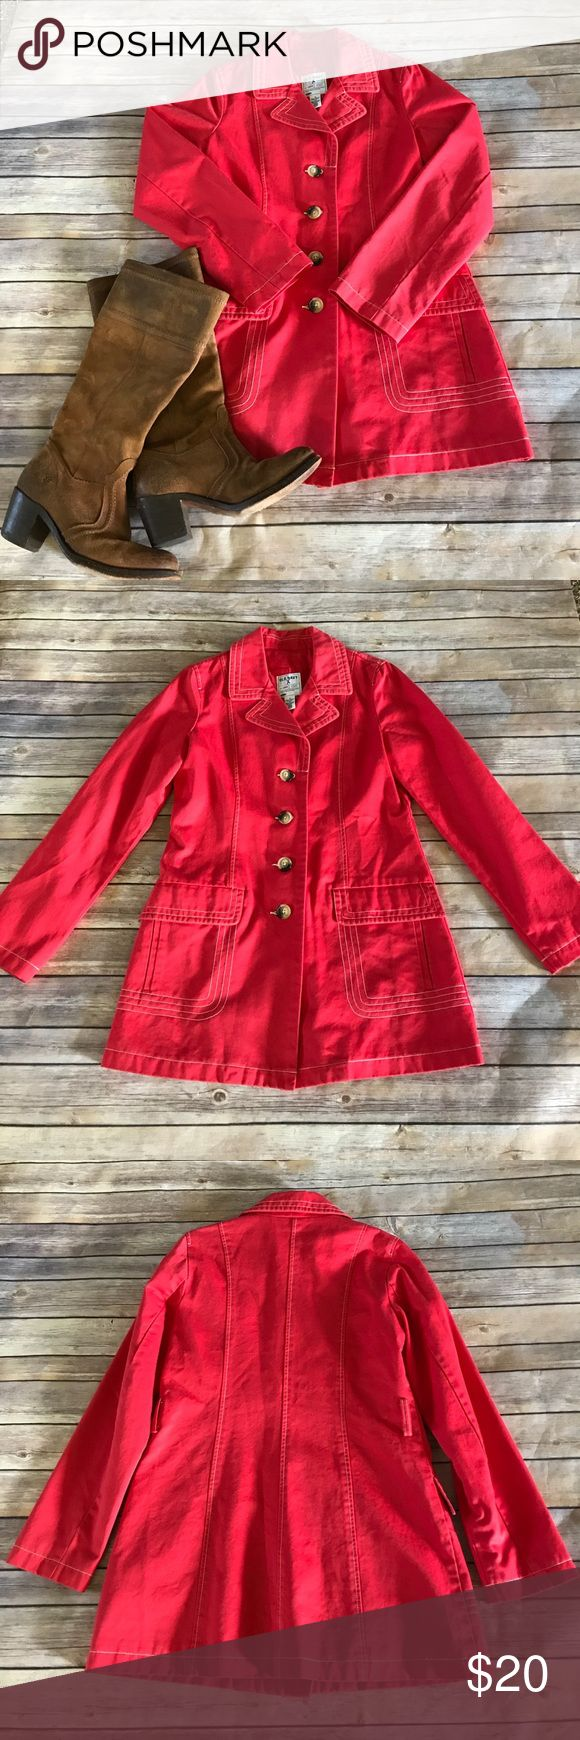 """Old Navy red twill coat Fun Old Navy red twill trench coat in EUC. Measures 30"""" in length, no signs of wear. Make an offer or bundle and save! Old Navy Jackets & Coats Trench Coats"""